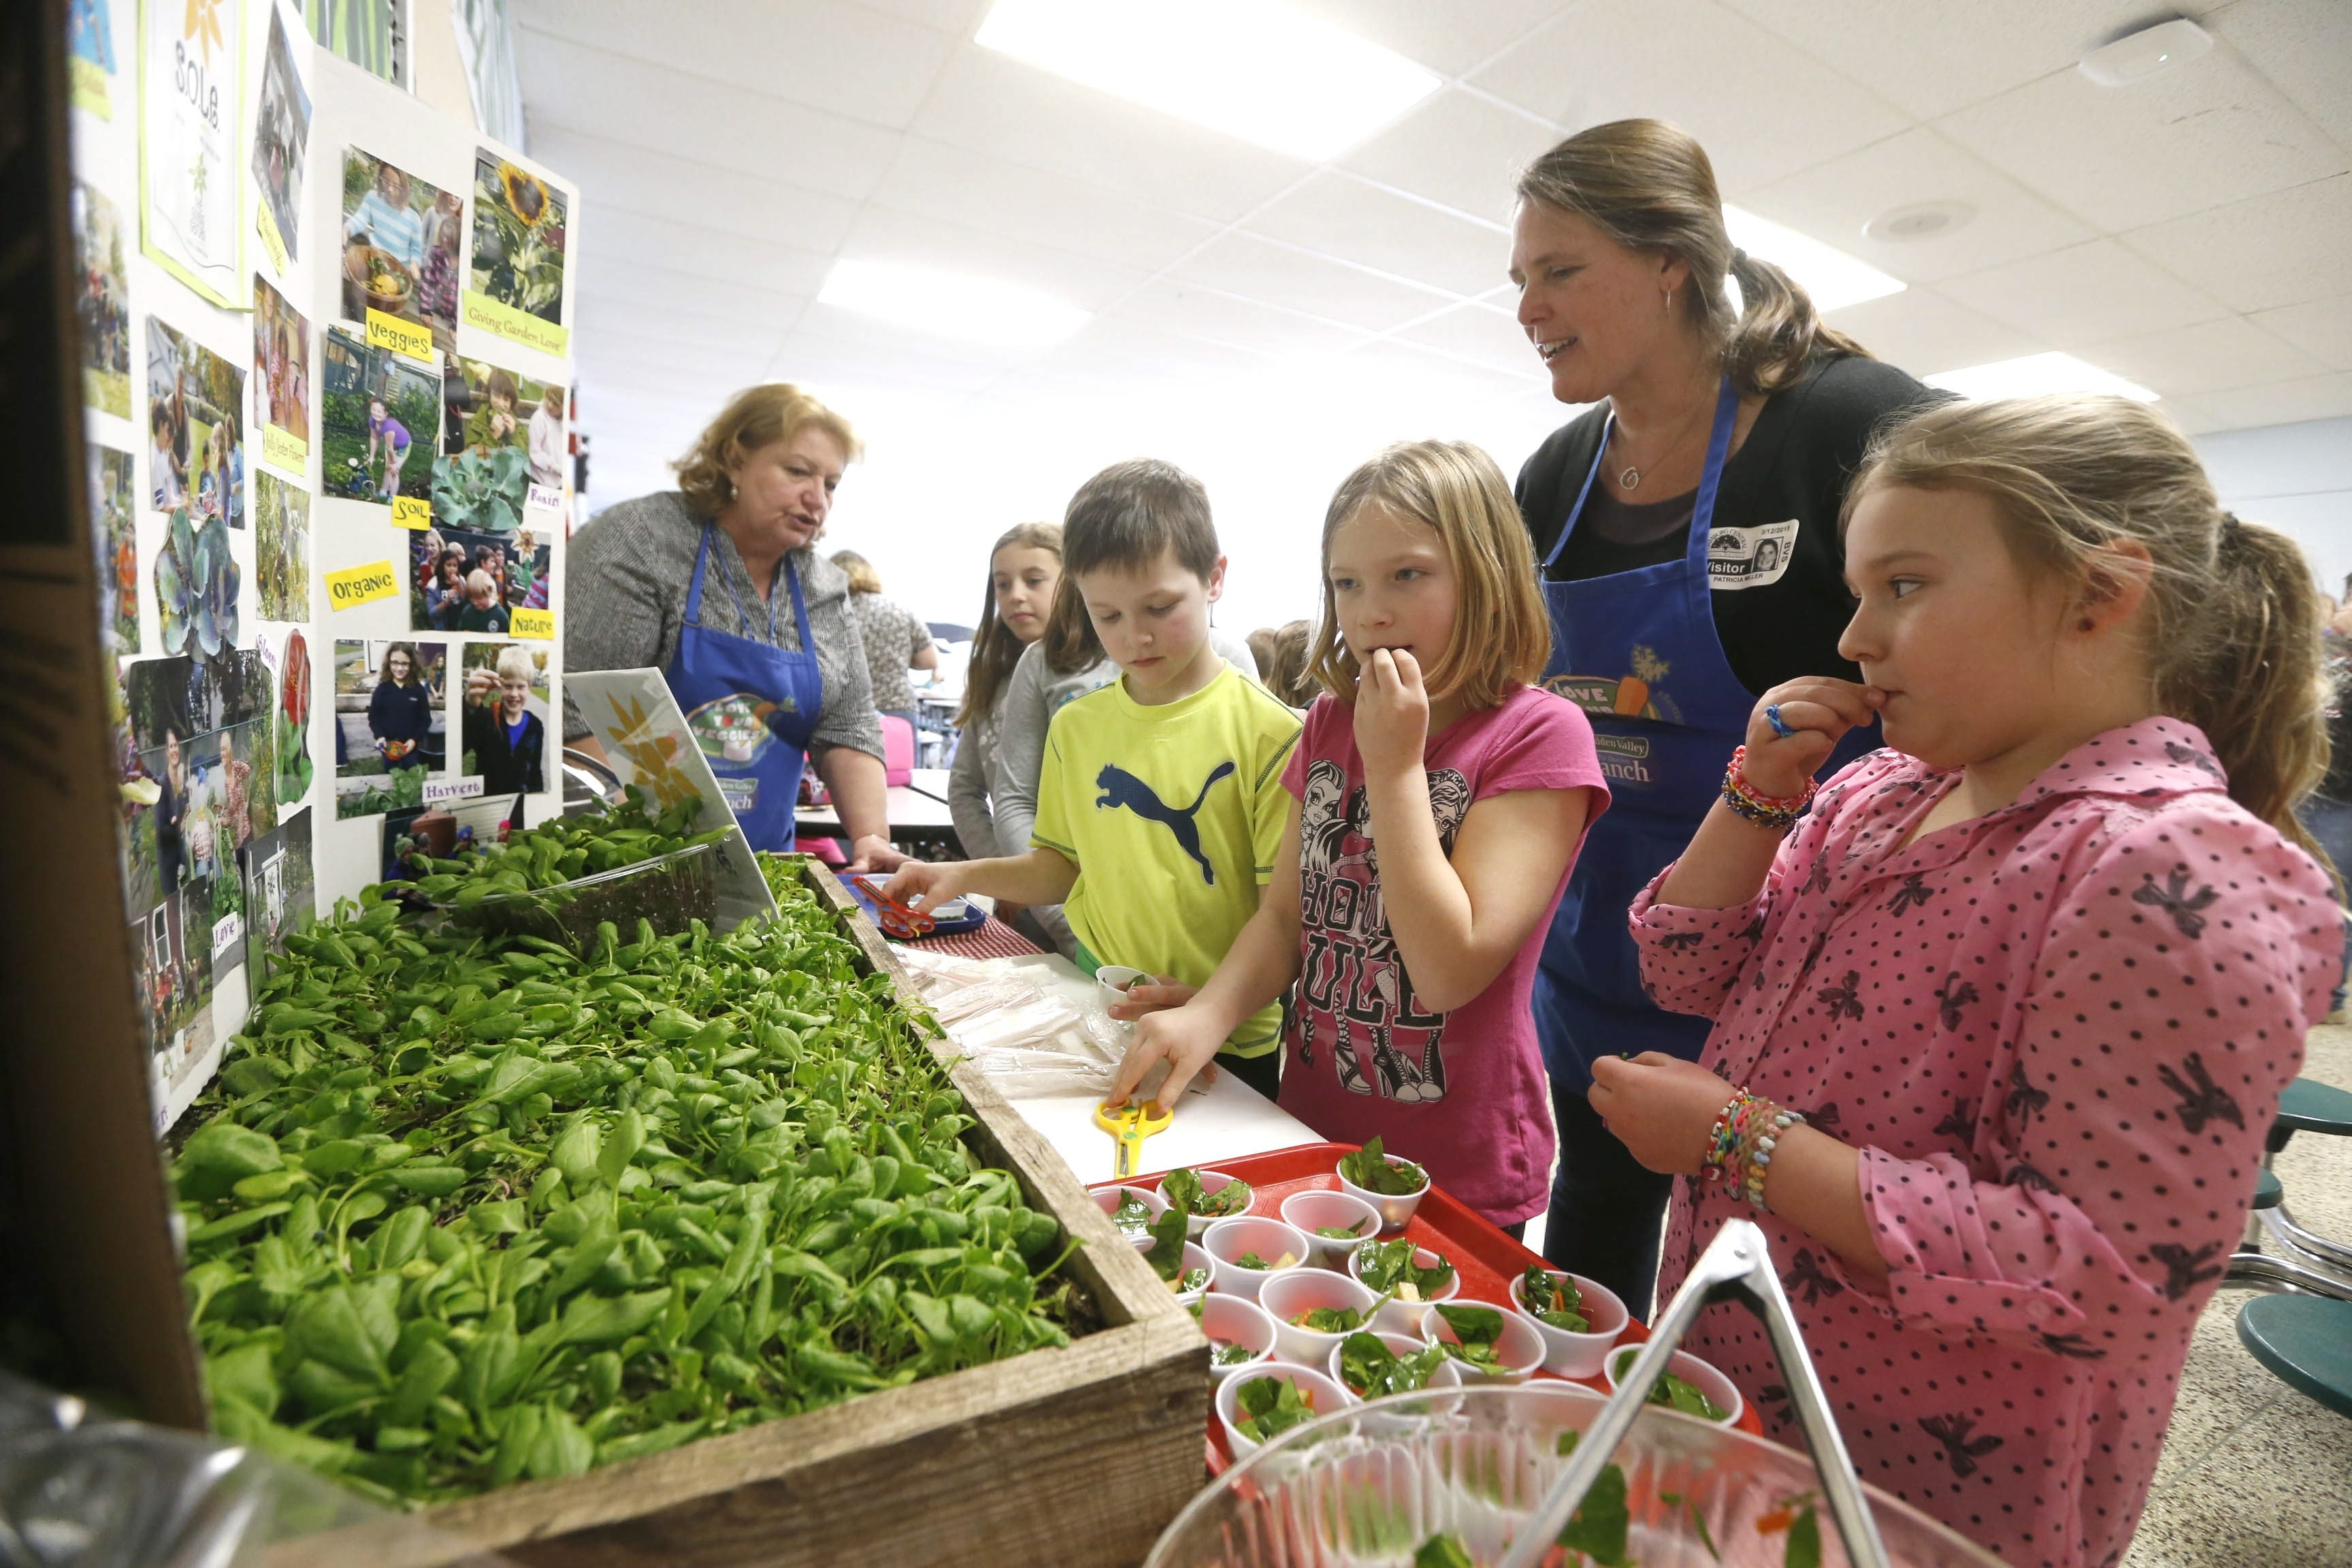 Boston Valley Elementary students take a taste test guided by food coordinators Linda Muldoon, left, and Tricia Miller, second from right.